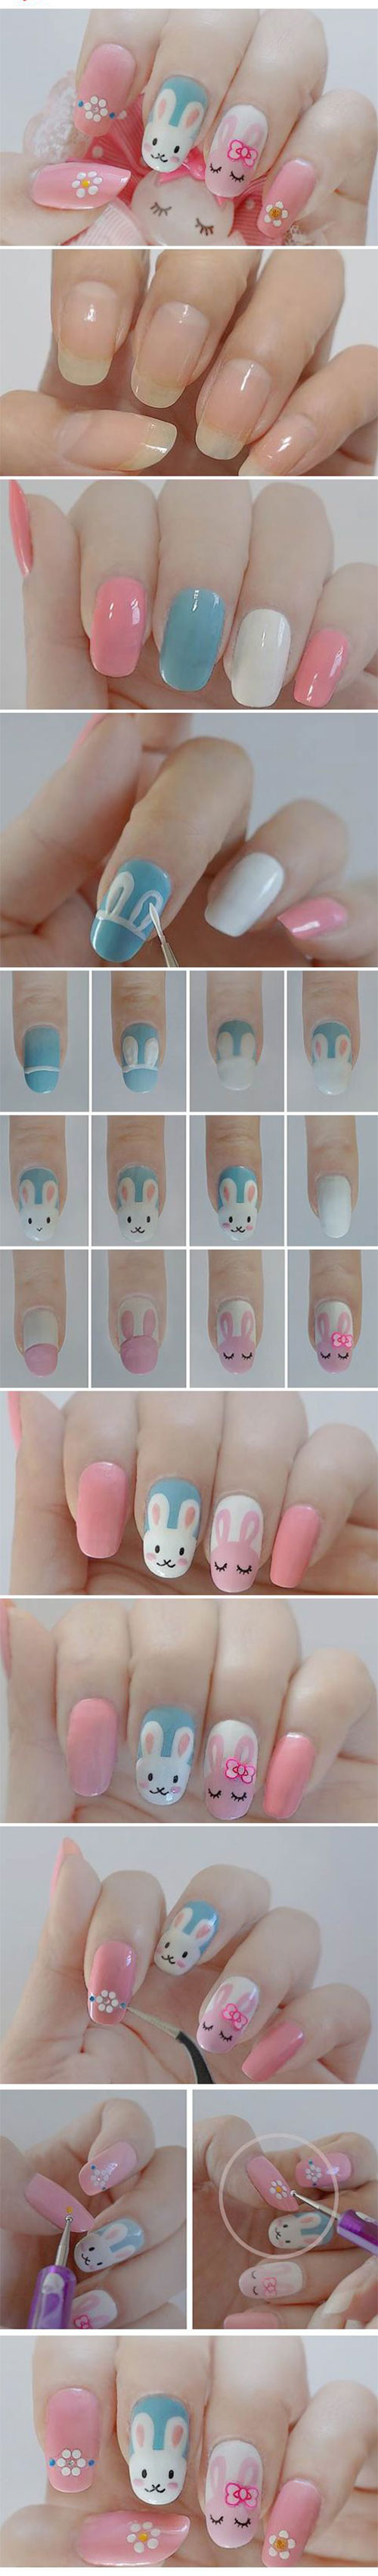 10-Step-By-Step-Easter-Nail-Art-Tutorials-For-Learners-2017-7